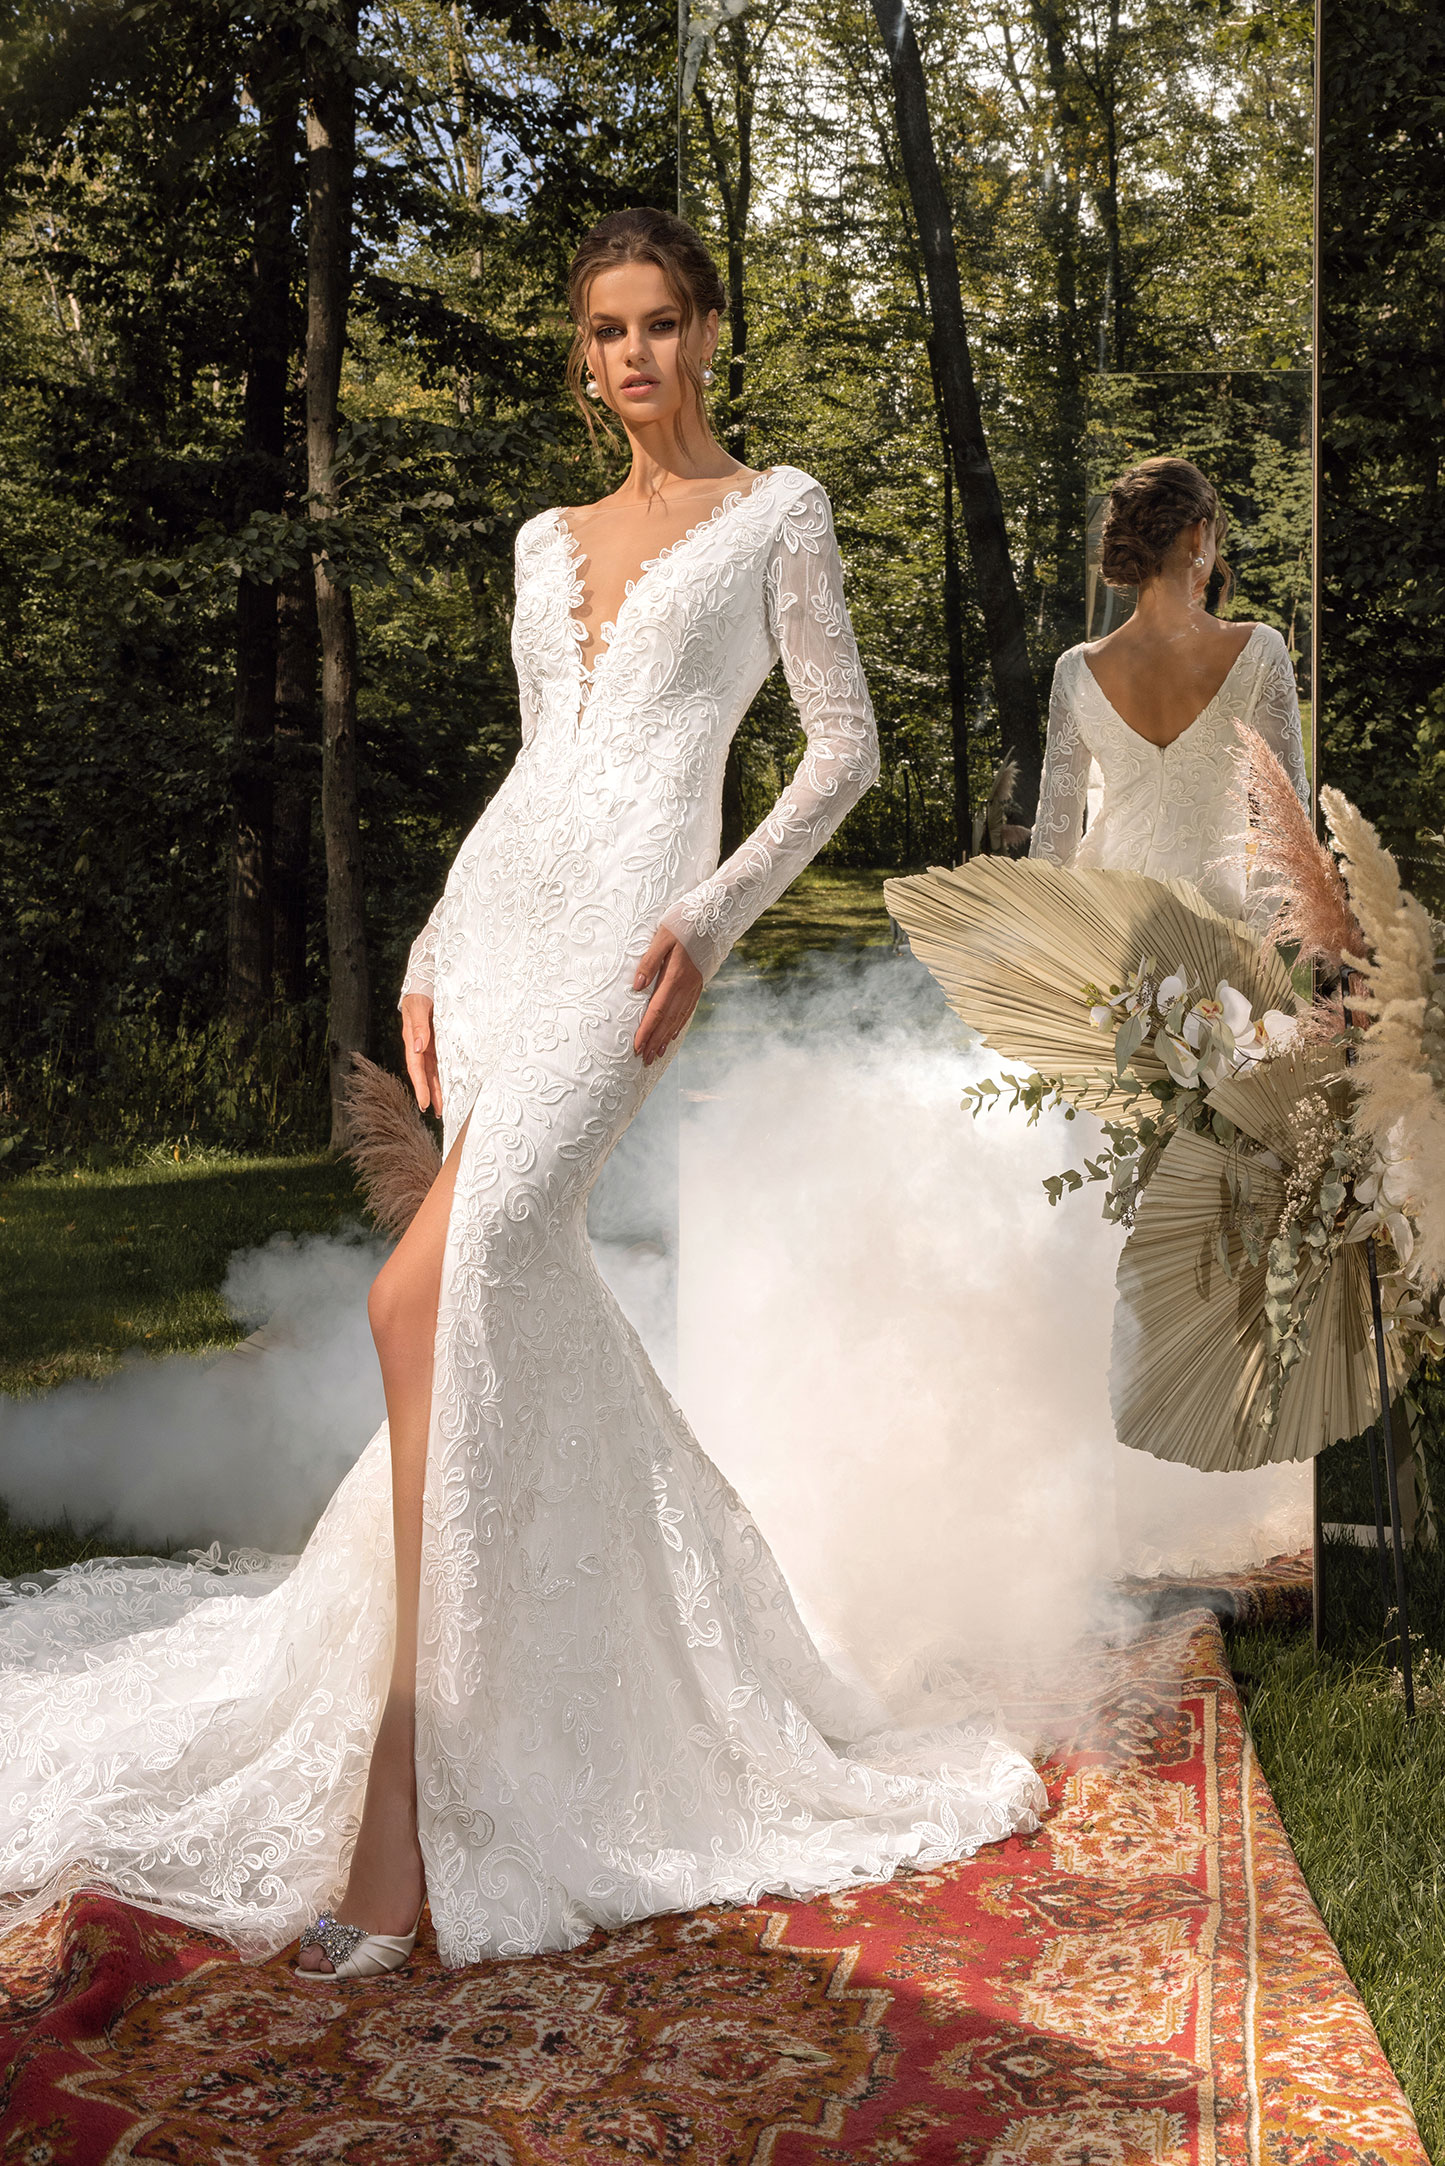 Lace A-line Wedding Dress With Corset Bodice, Ruched Long Sleeves And Bow Neck_3